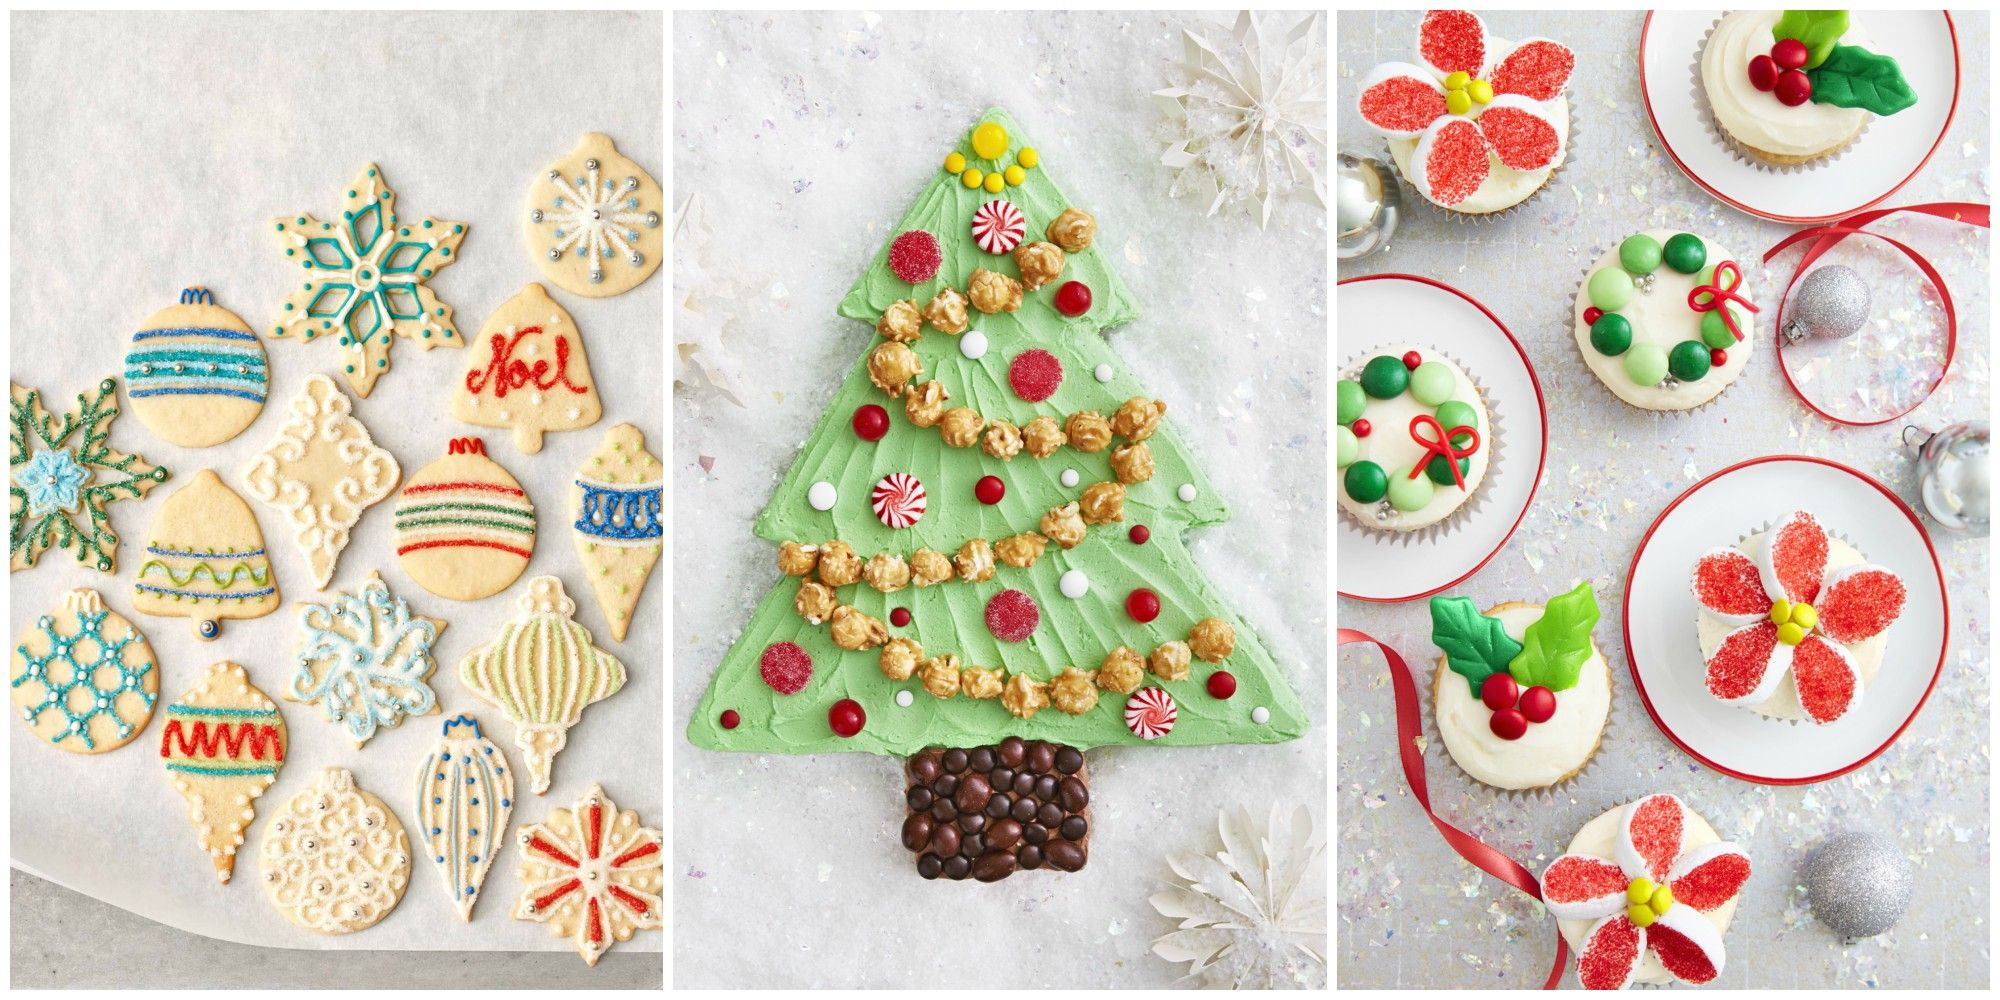 48 Easy Christmas Desserts - Best Recipes and Ideas for Christmas ...